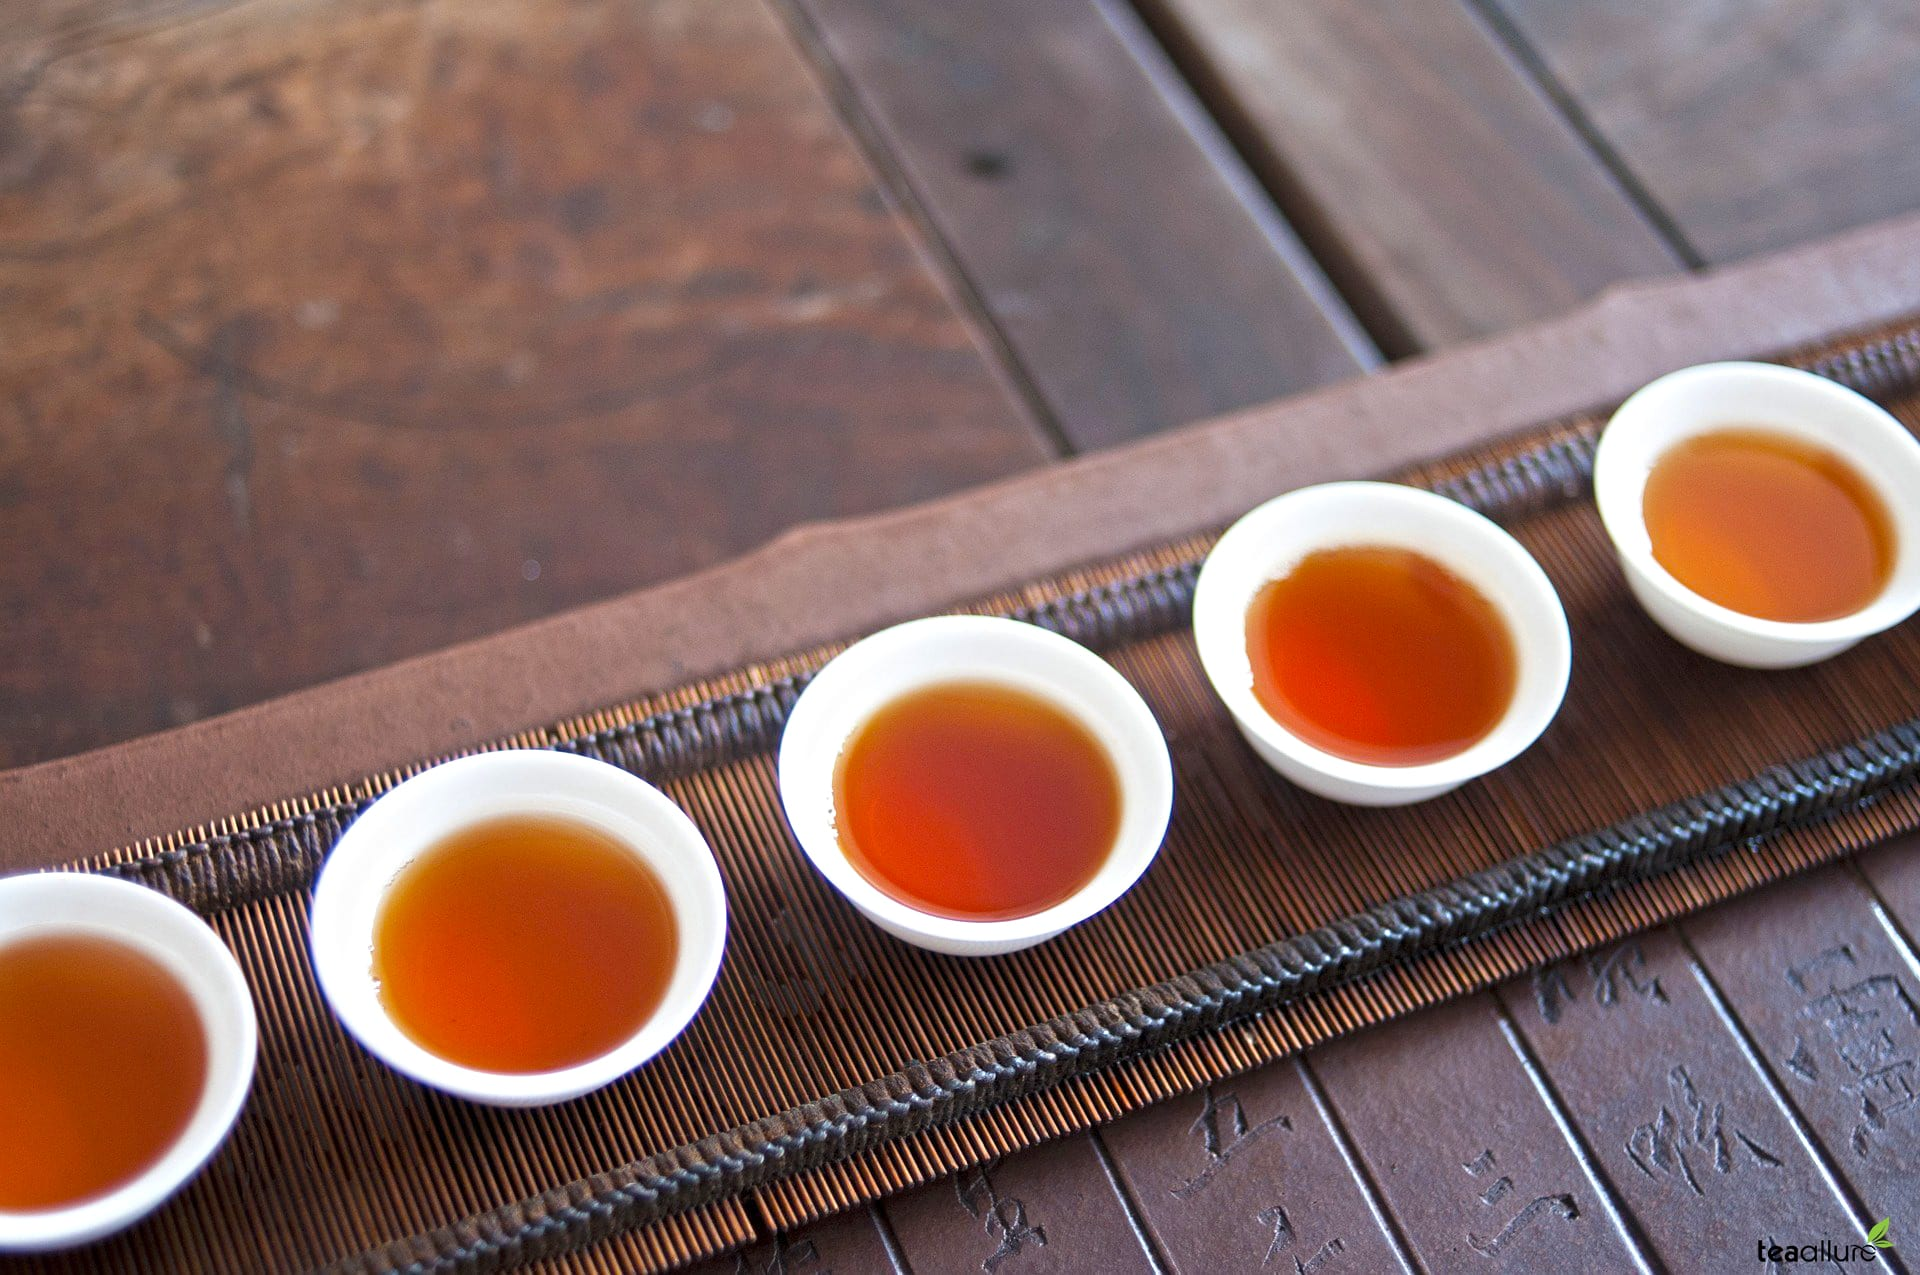 Drinking too much Pu-erh tea?